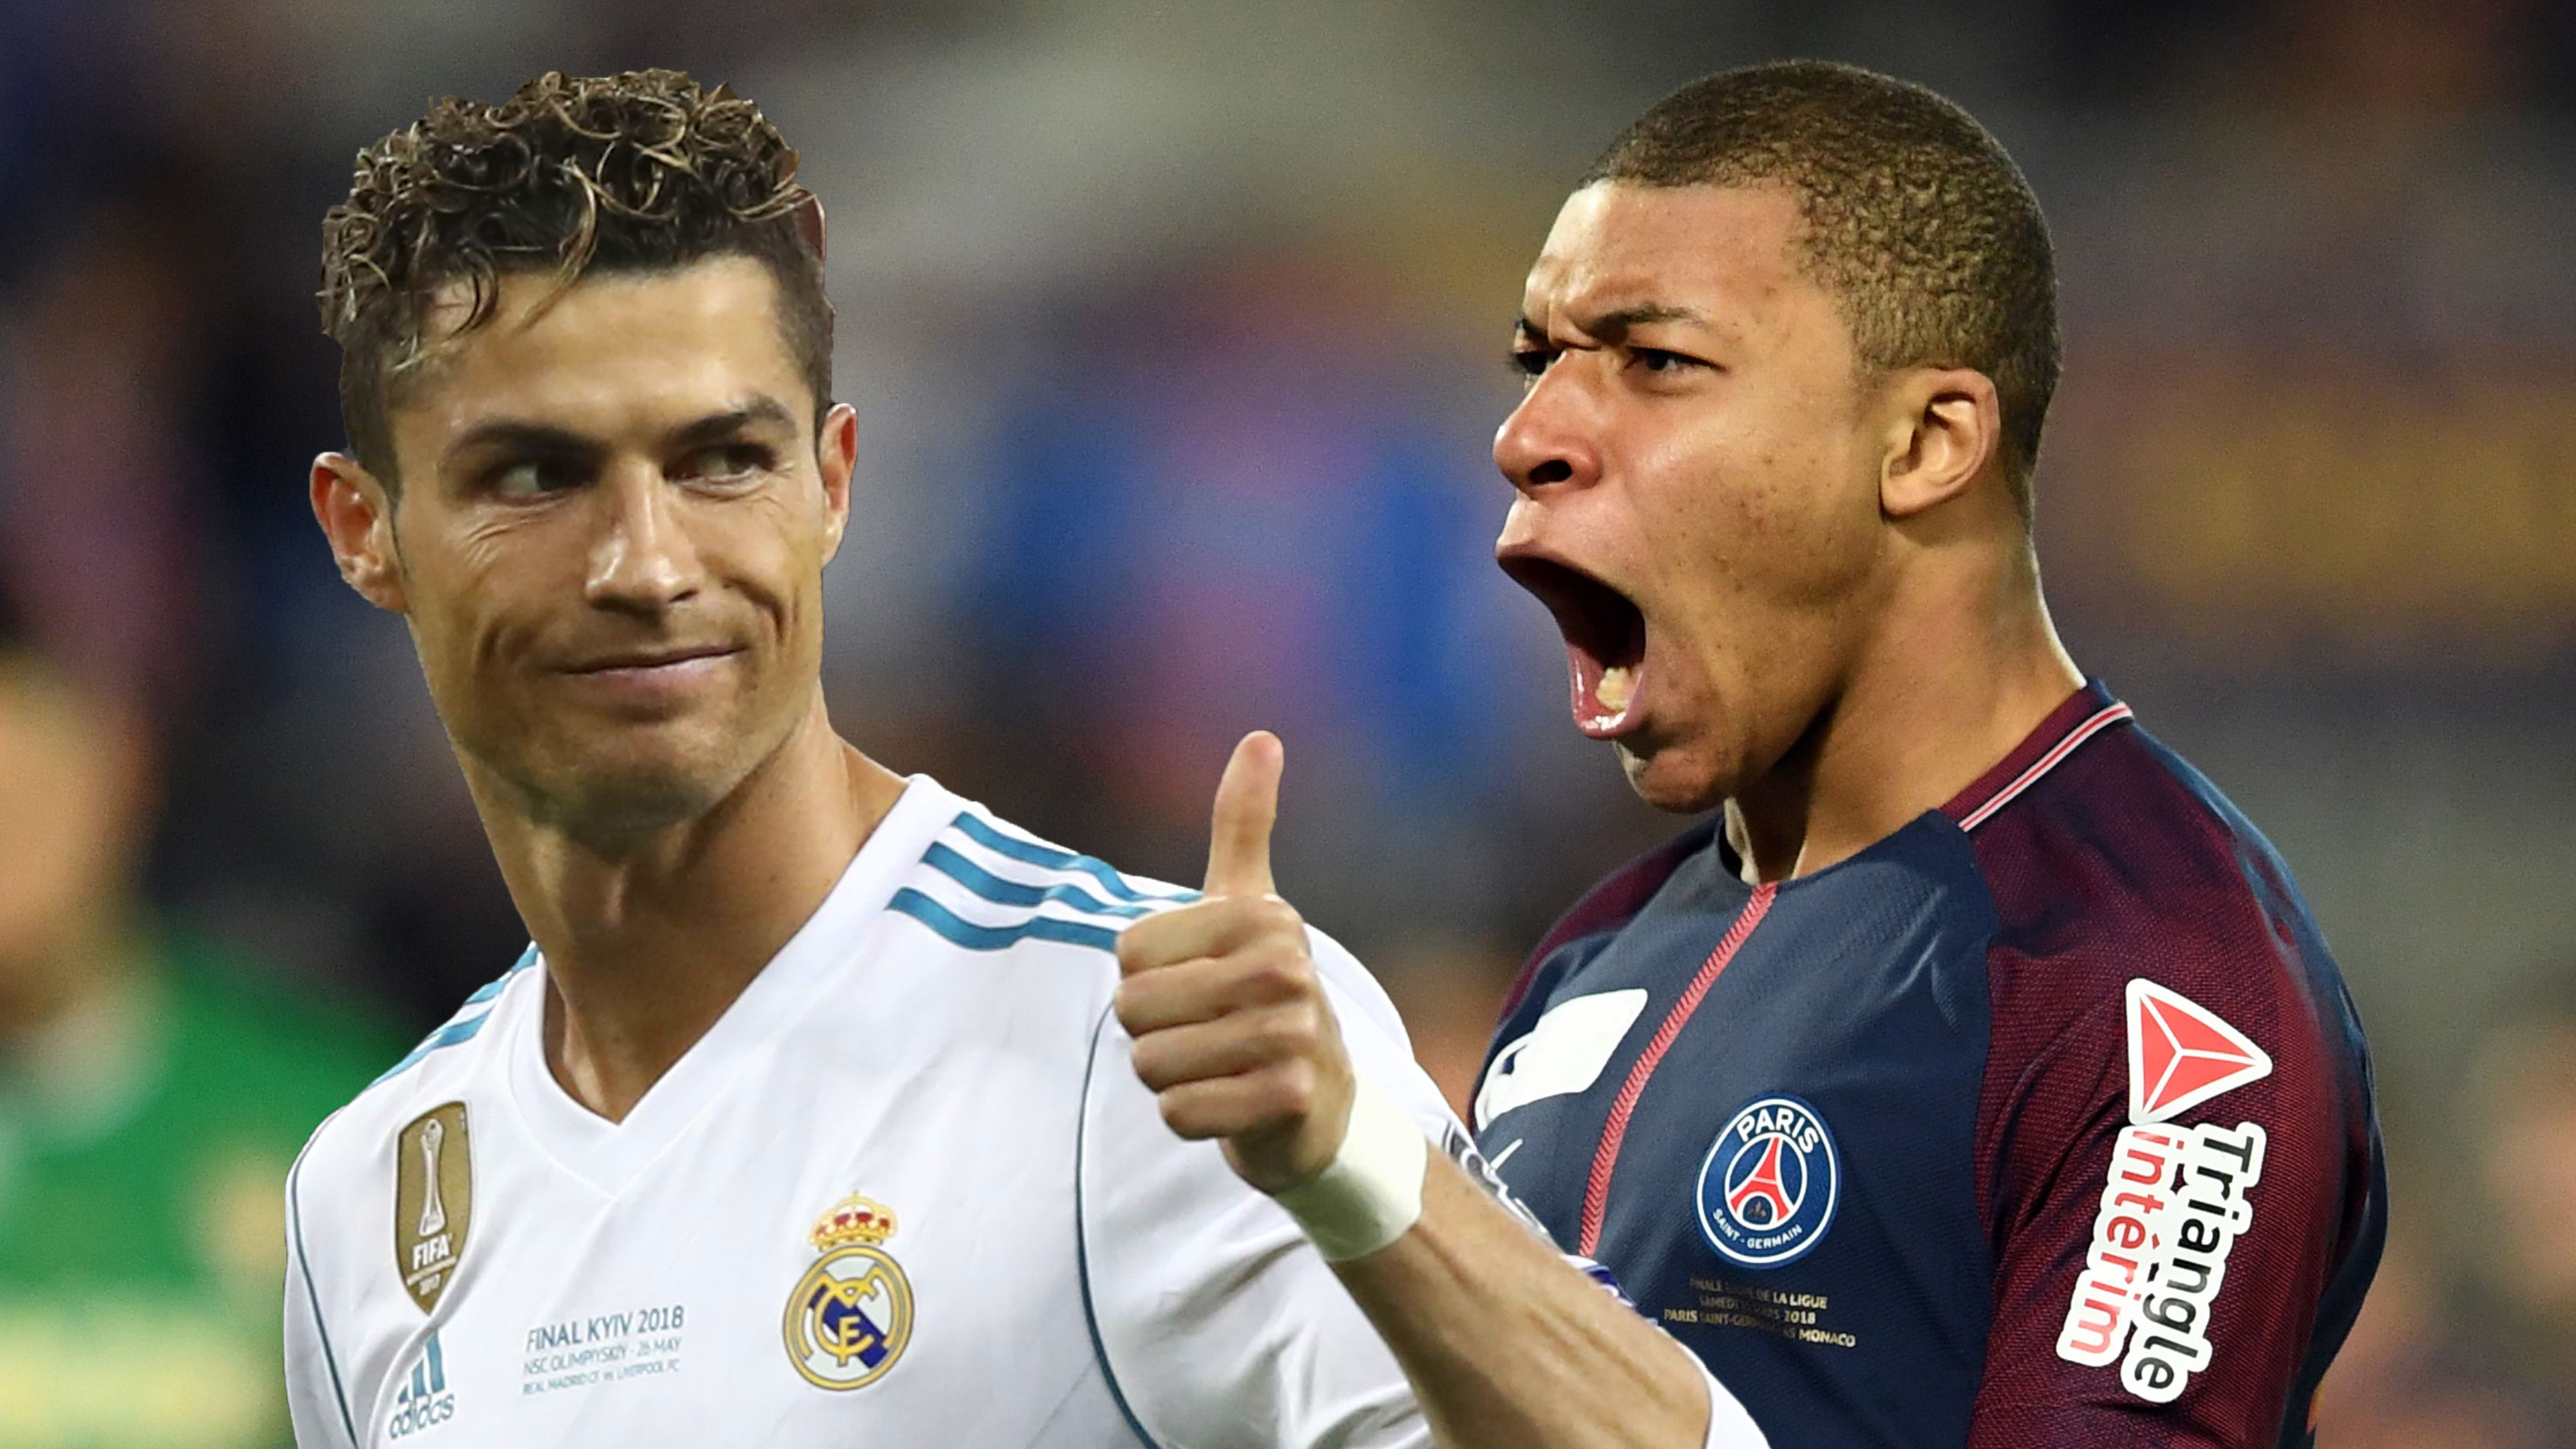 Mbappe can follow in Ronaldo's footsteps at Real Madrid - Cannavaro